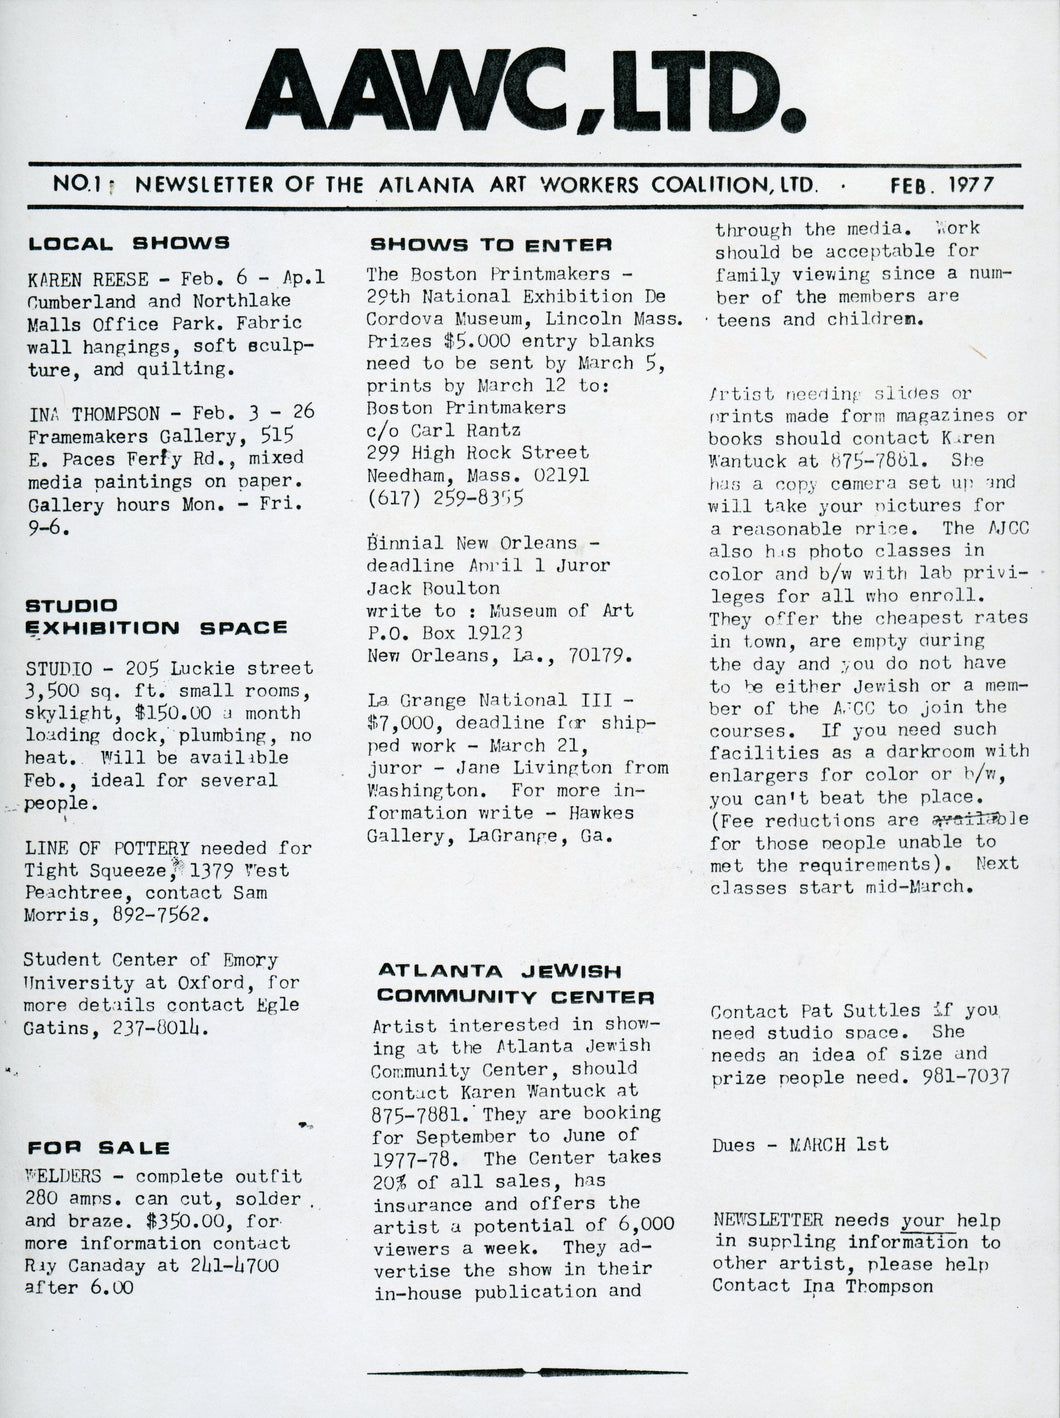 ART PAPERS 01.01 - Jan/Feb 1977 - SOLD OUT